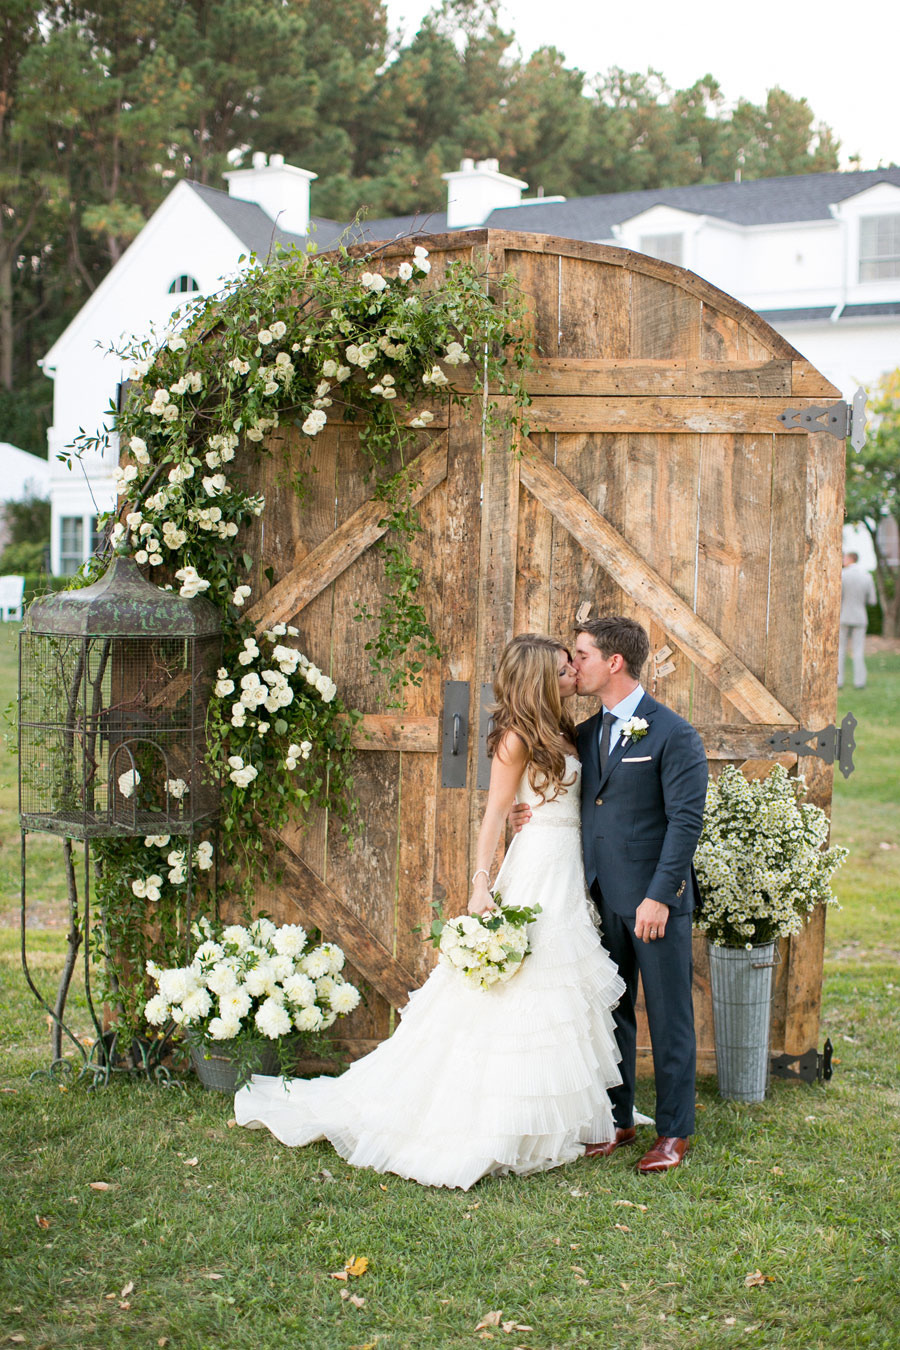 Rustic Wedding Photo Ideas